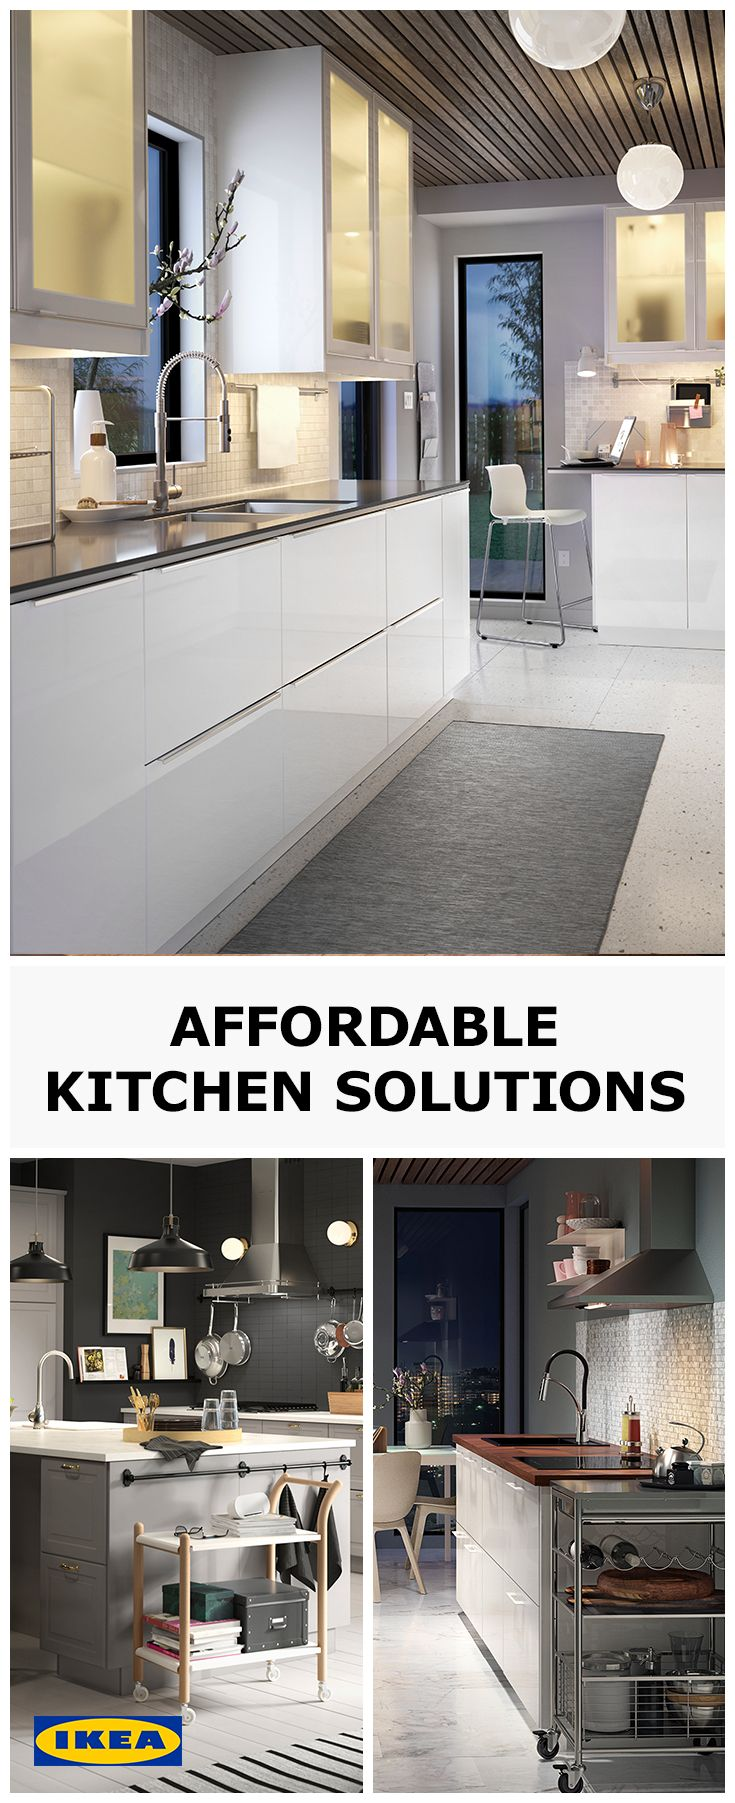 From preparing breakfast with loved ones, to hosting a meal with friends, the kitchen is an important part of any home. With so many affordable styles to choose from, why not treat your home to a high quality kitchen from IKEA.